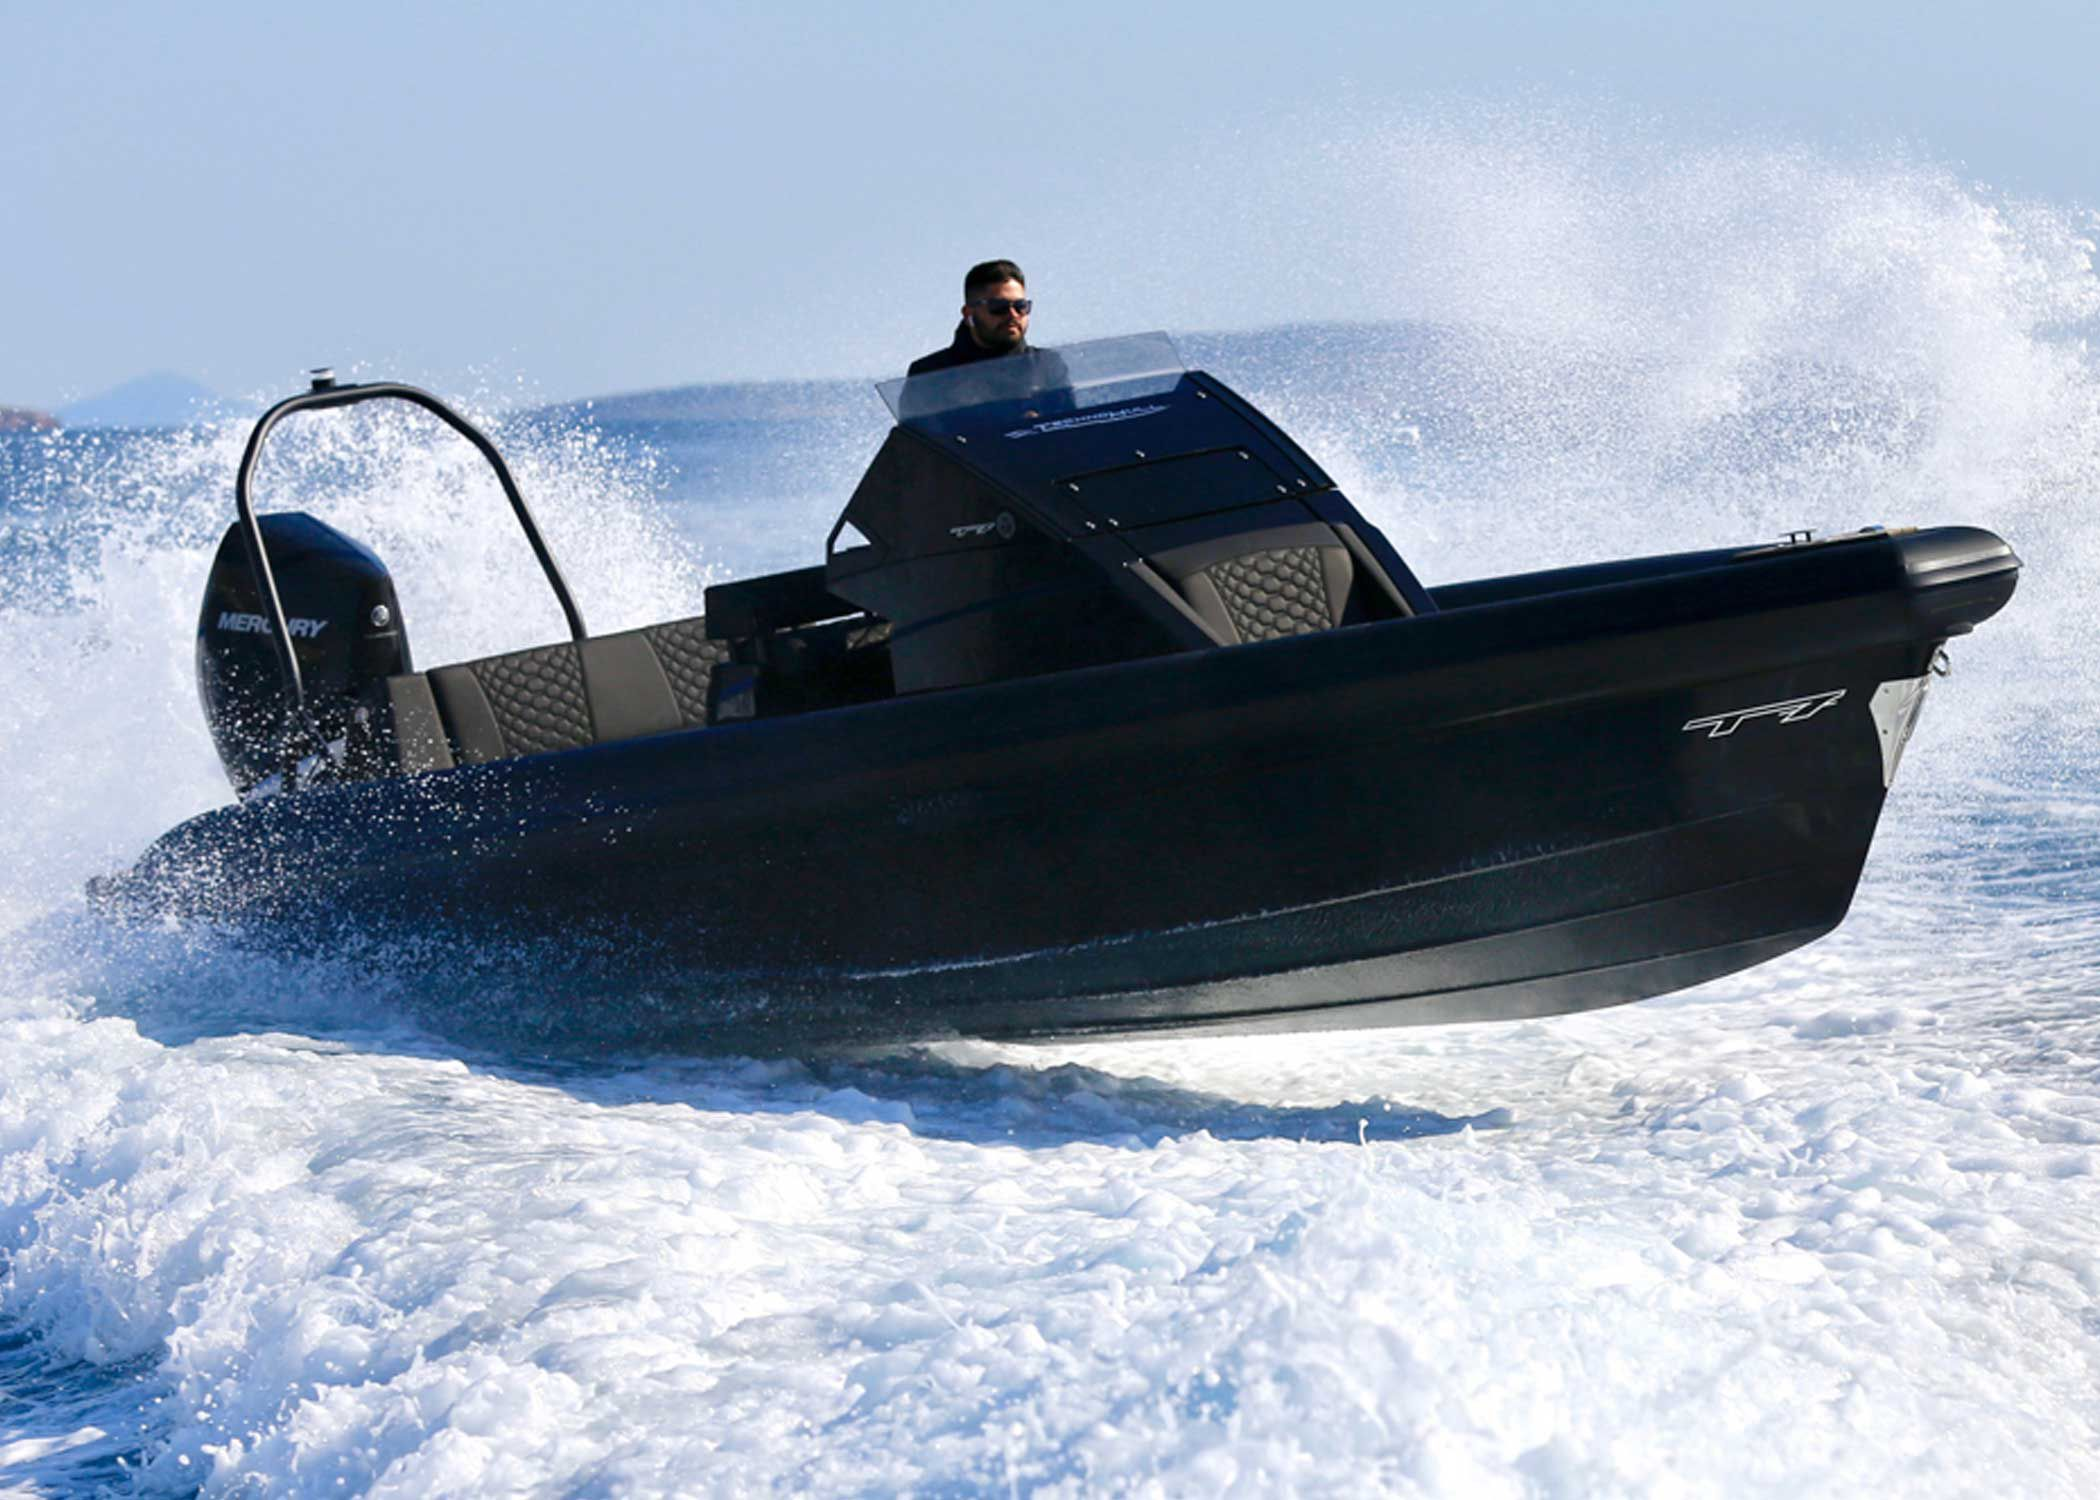 Technohull says its 25-foot T7 RIB has a top speed 56-plus knots at wide-open throttle